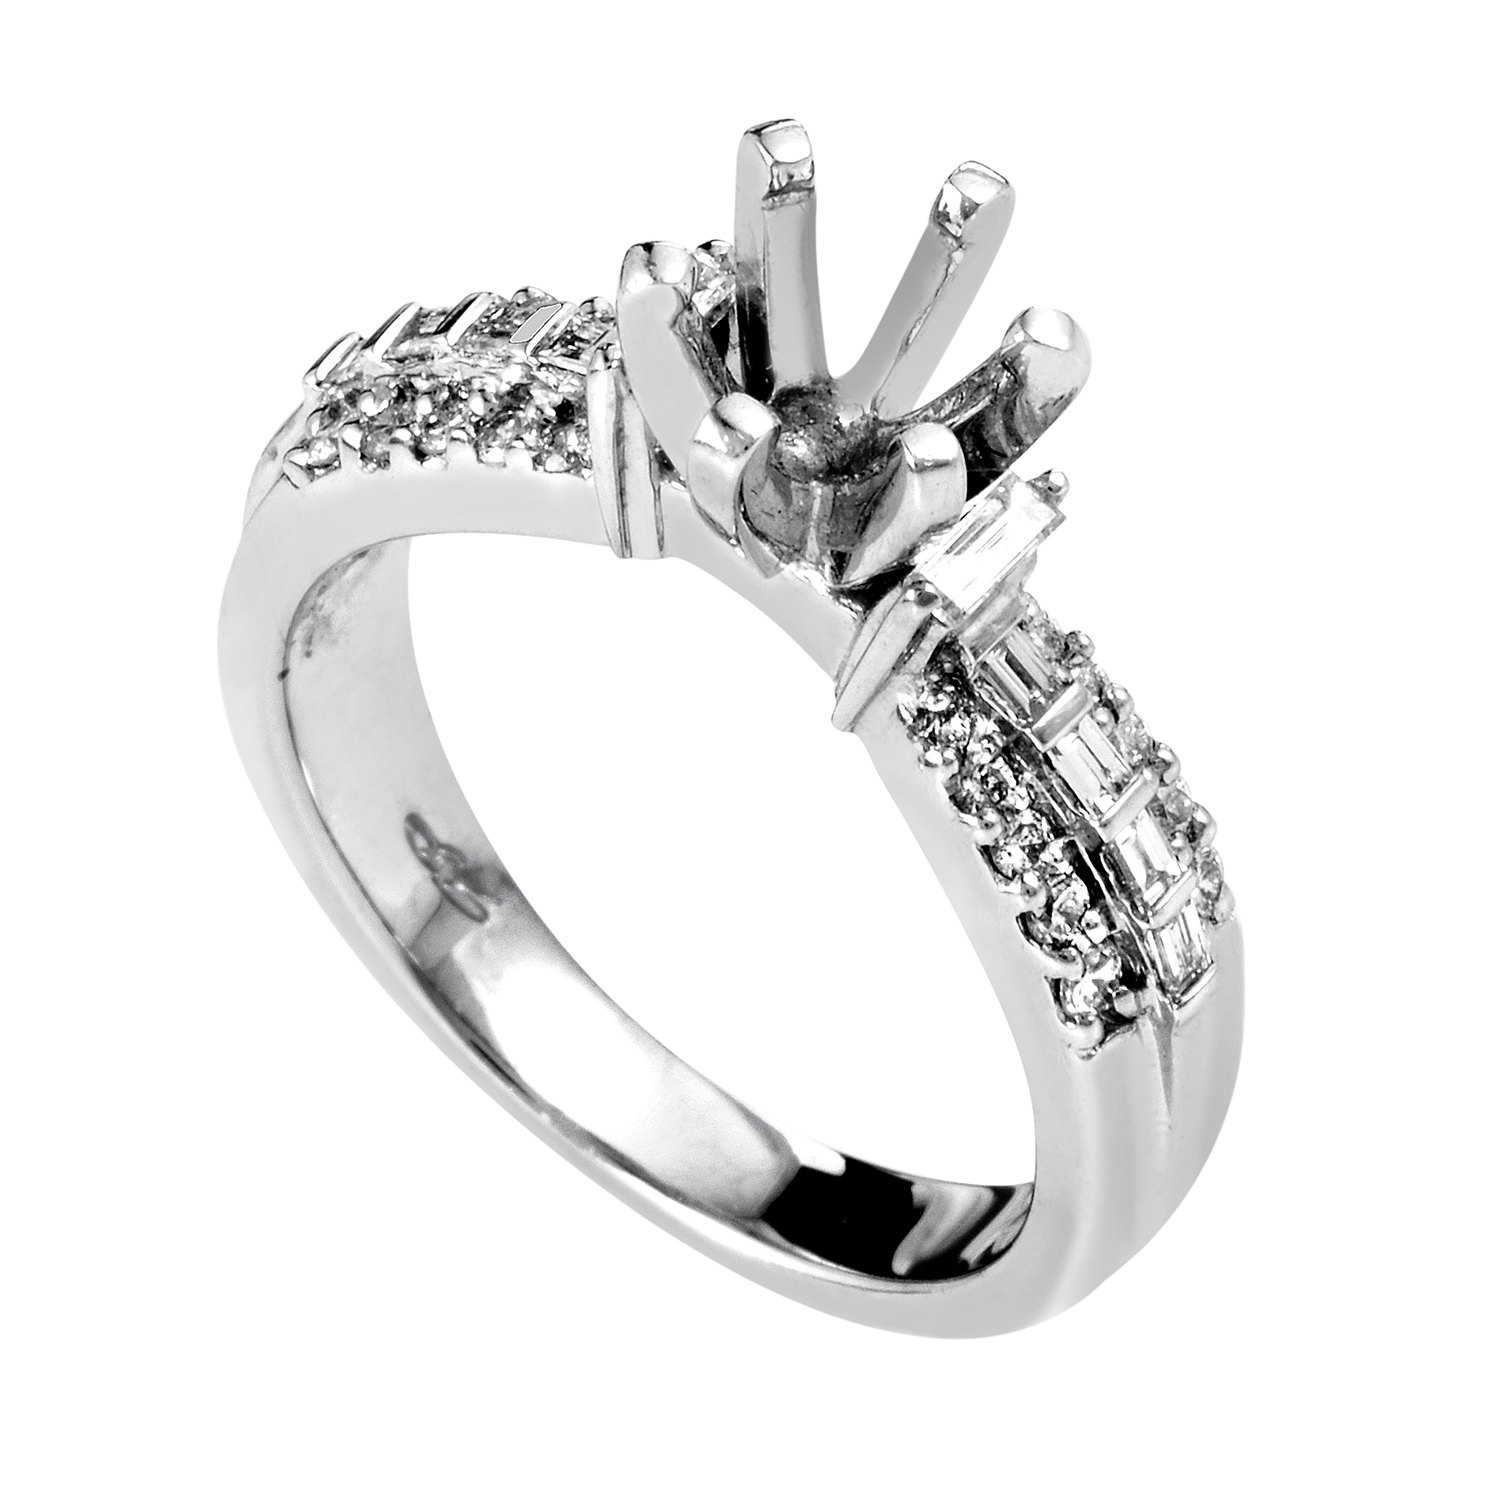 Women's Platinum & Diamond Engagement Ring Mounting MFC04-040913